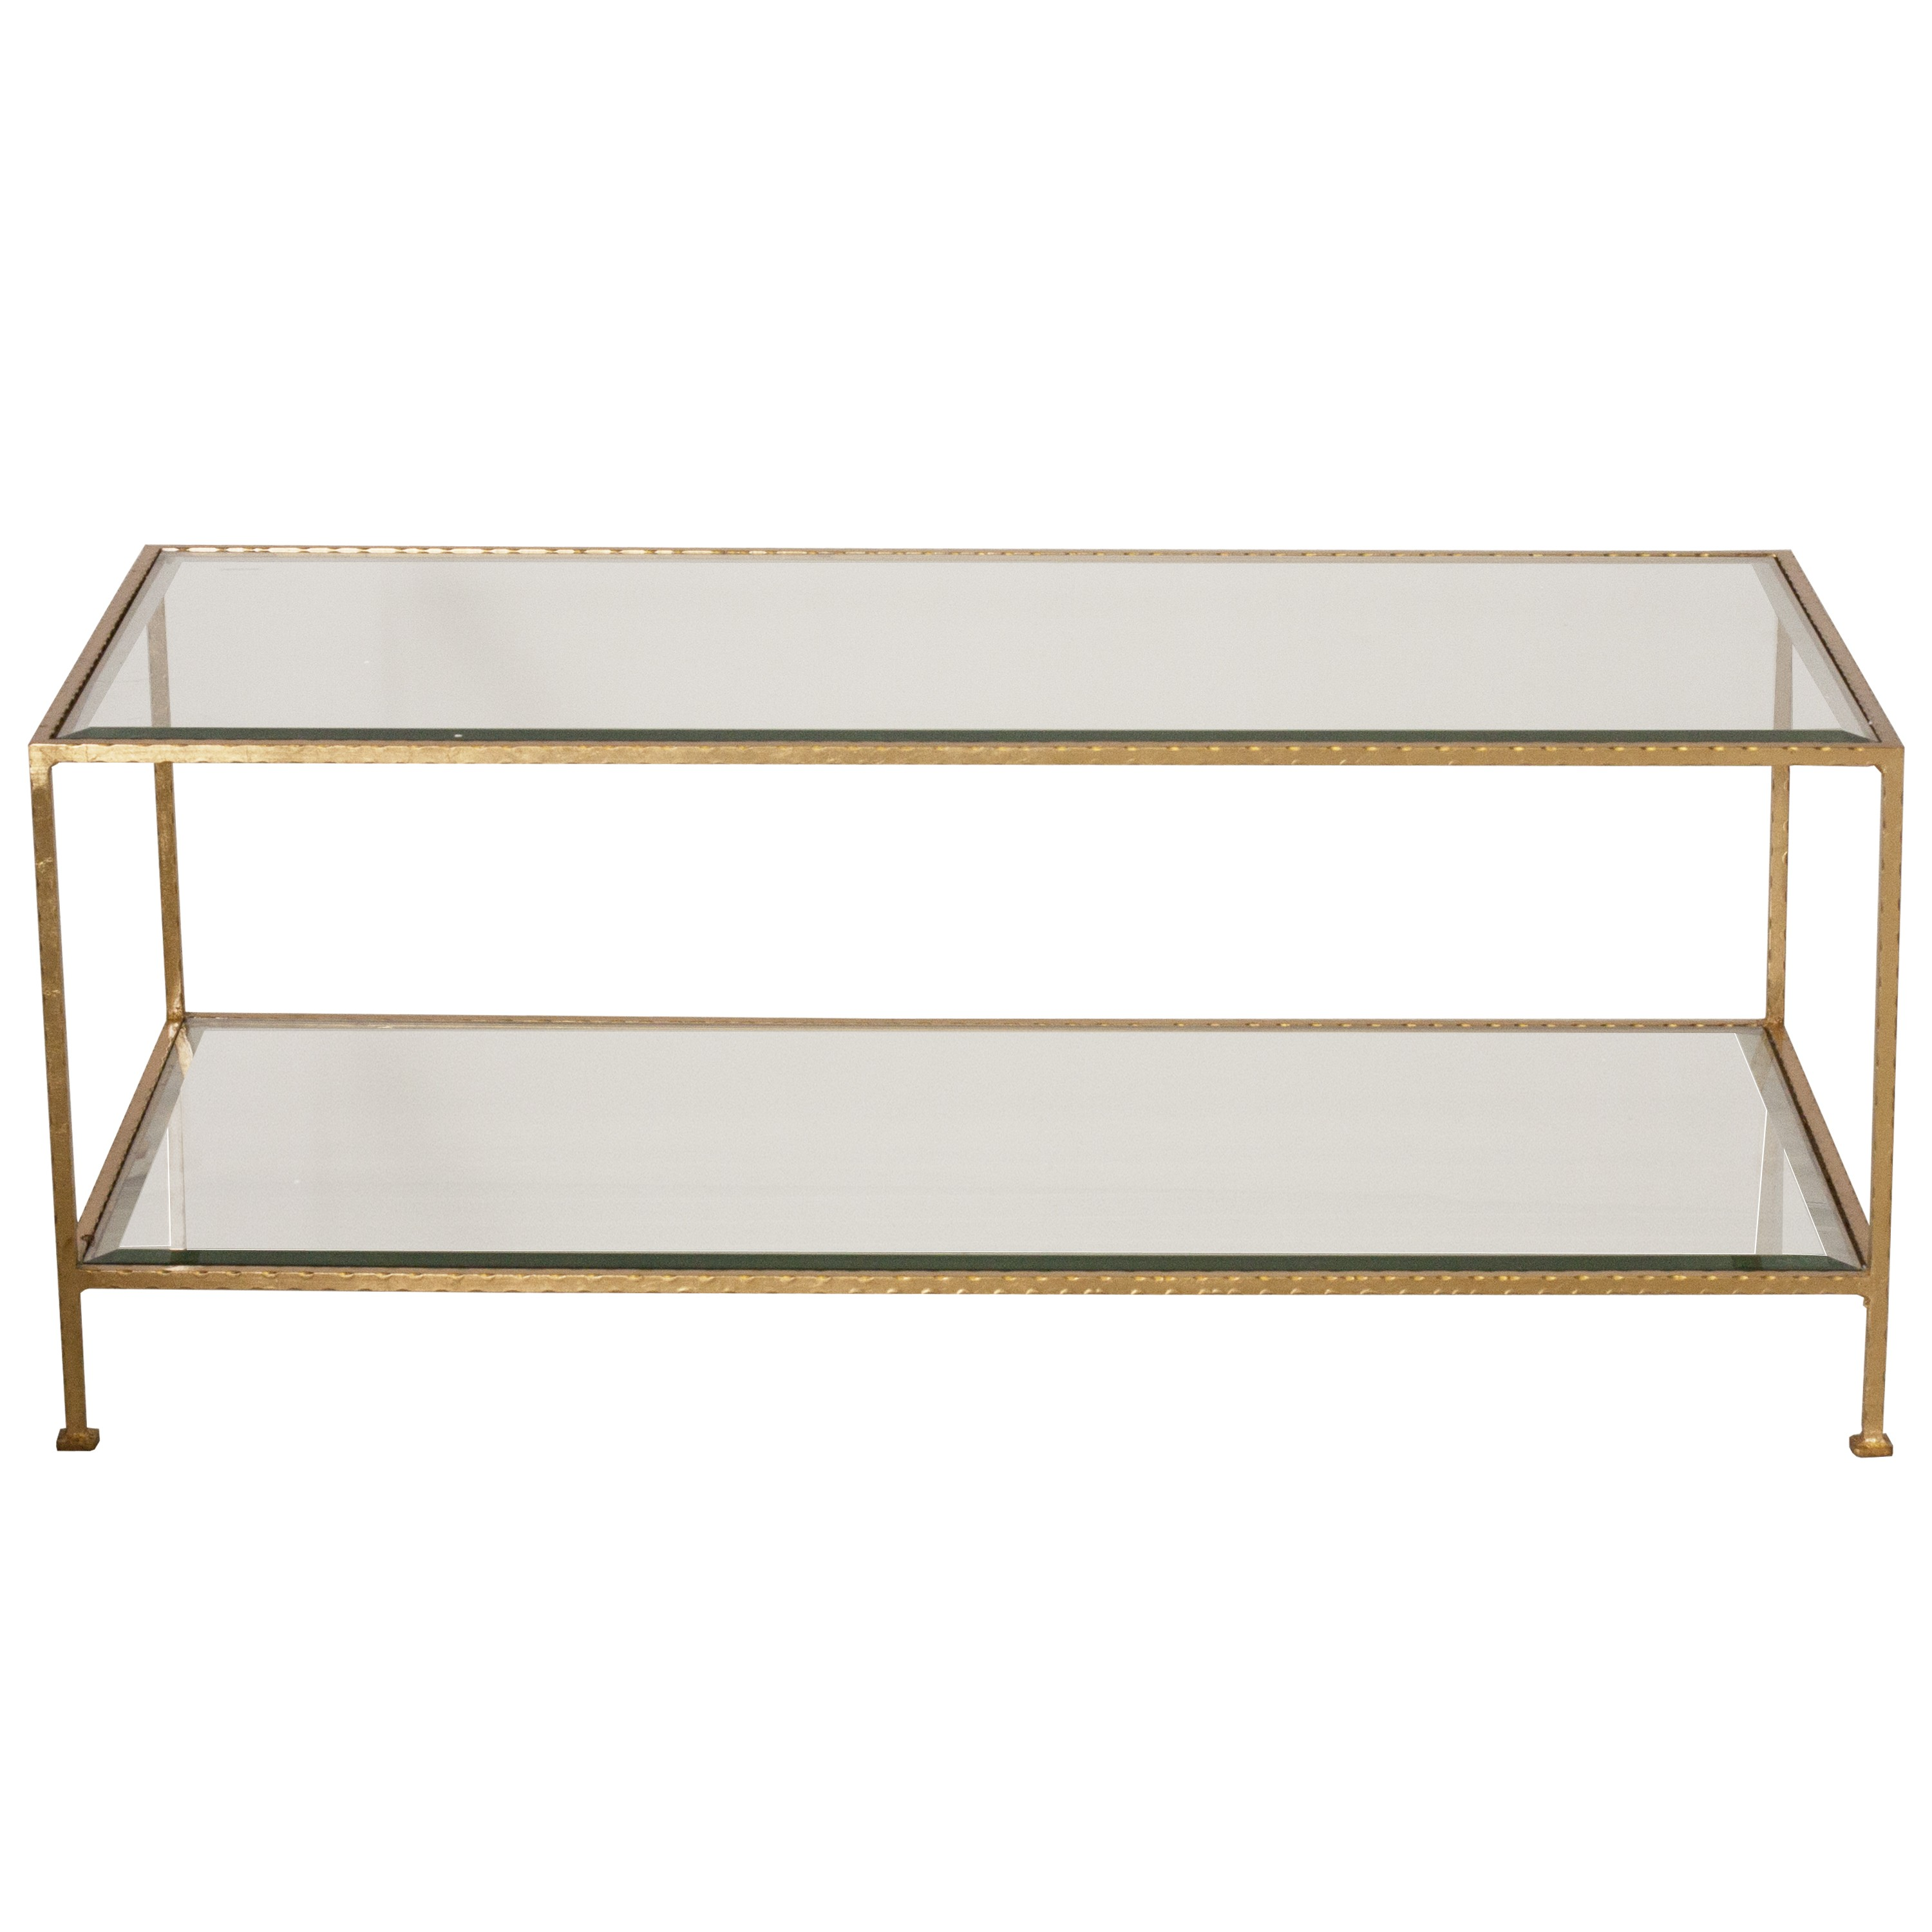 Gold Glass Coffee Table Hammered Gold Leaf Rectangular Coffee Table With Beveled Glass Shelves (Image 4 of 10)